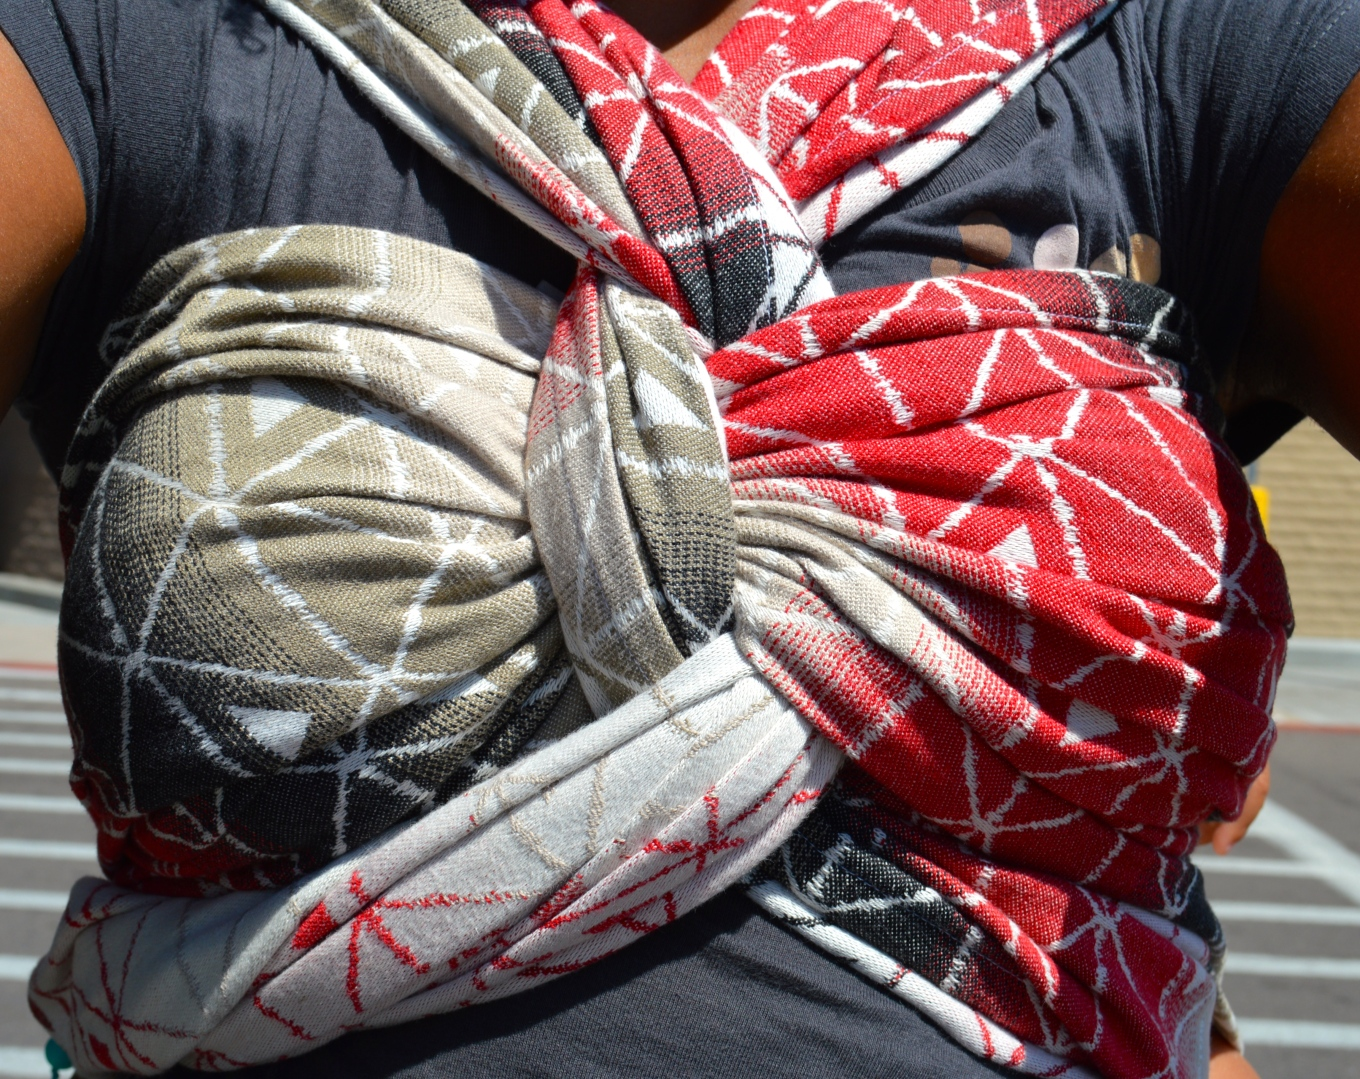 Closeup view of fabulous finish of back carry. The wrap is twisted above a lose chest pass. One tail is threaded under the wrap, the other over before twisting again below the chest pass. The wrap gradients color from red to black to brown then white.